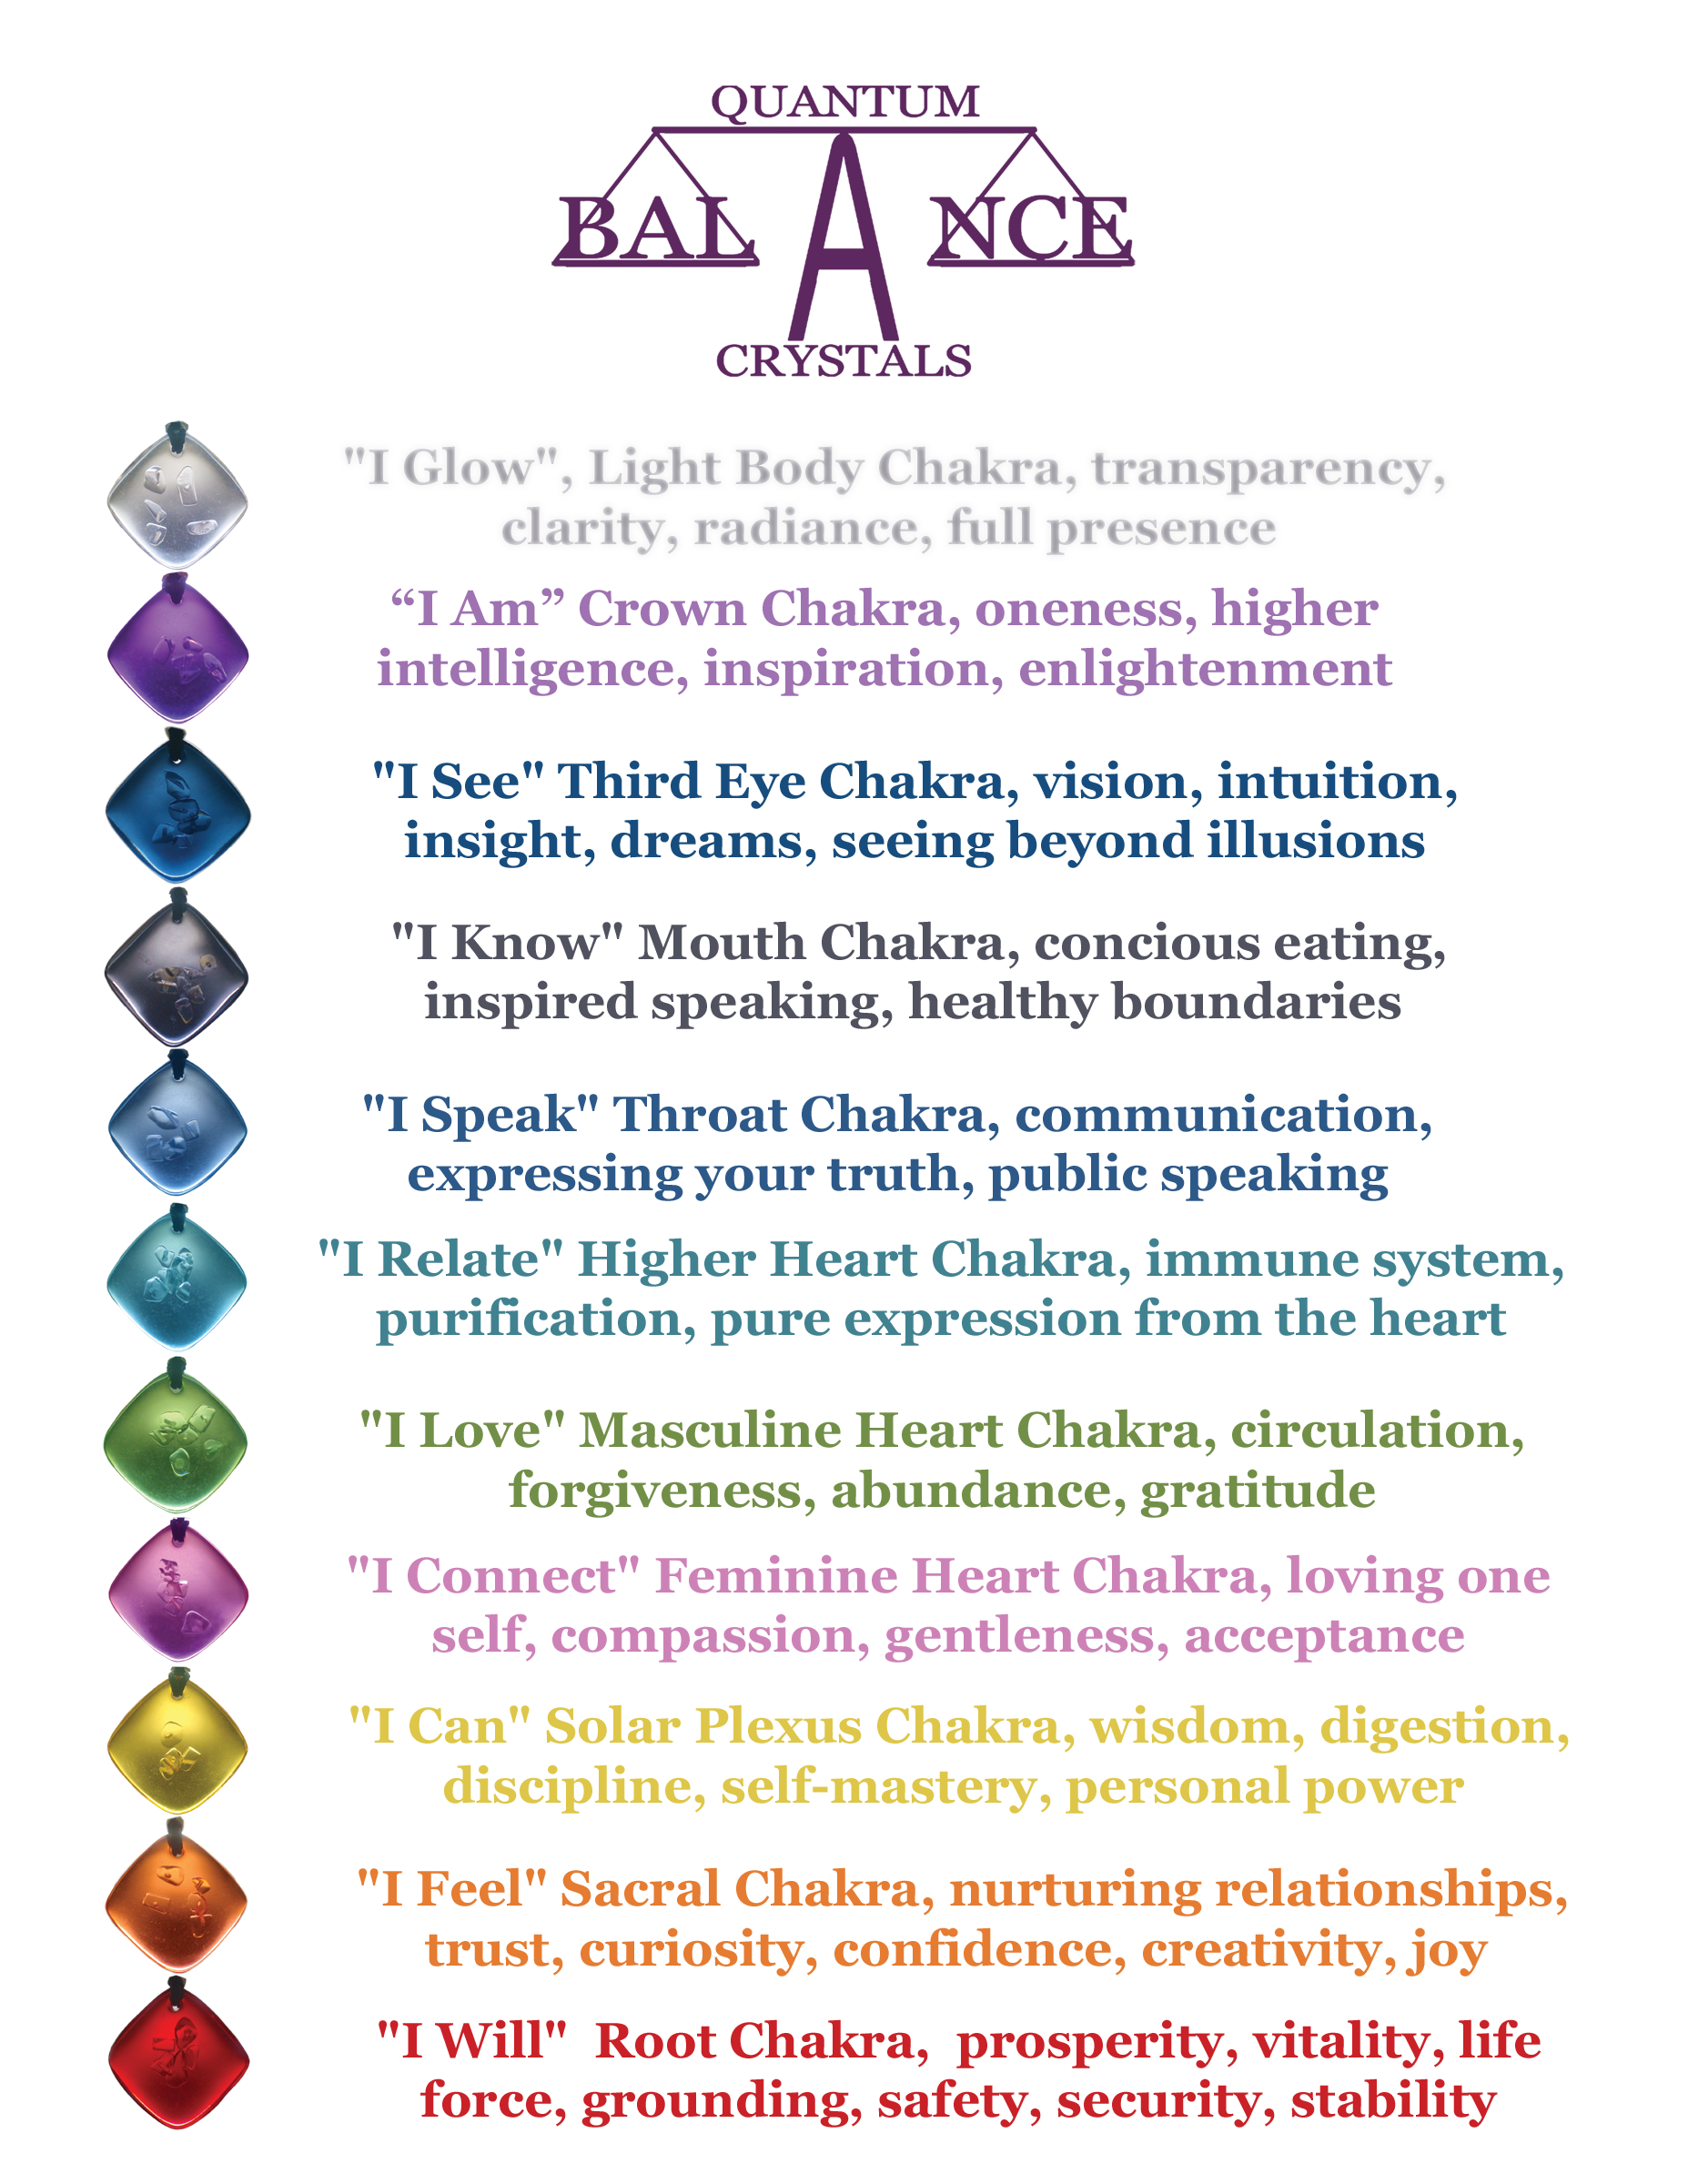 Healing crystals chart quantum balance crystalseffect on healing crystals chart quantum balance crystalseffect on electromagnetic frequencies nvjuhfo Image collections